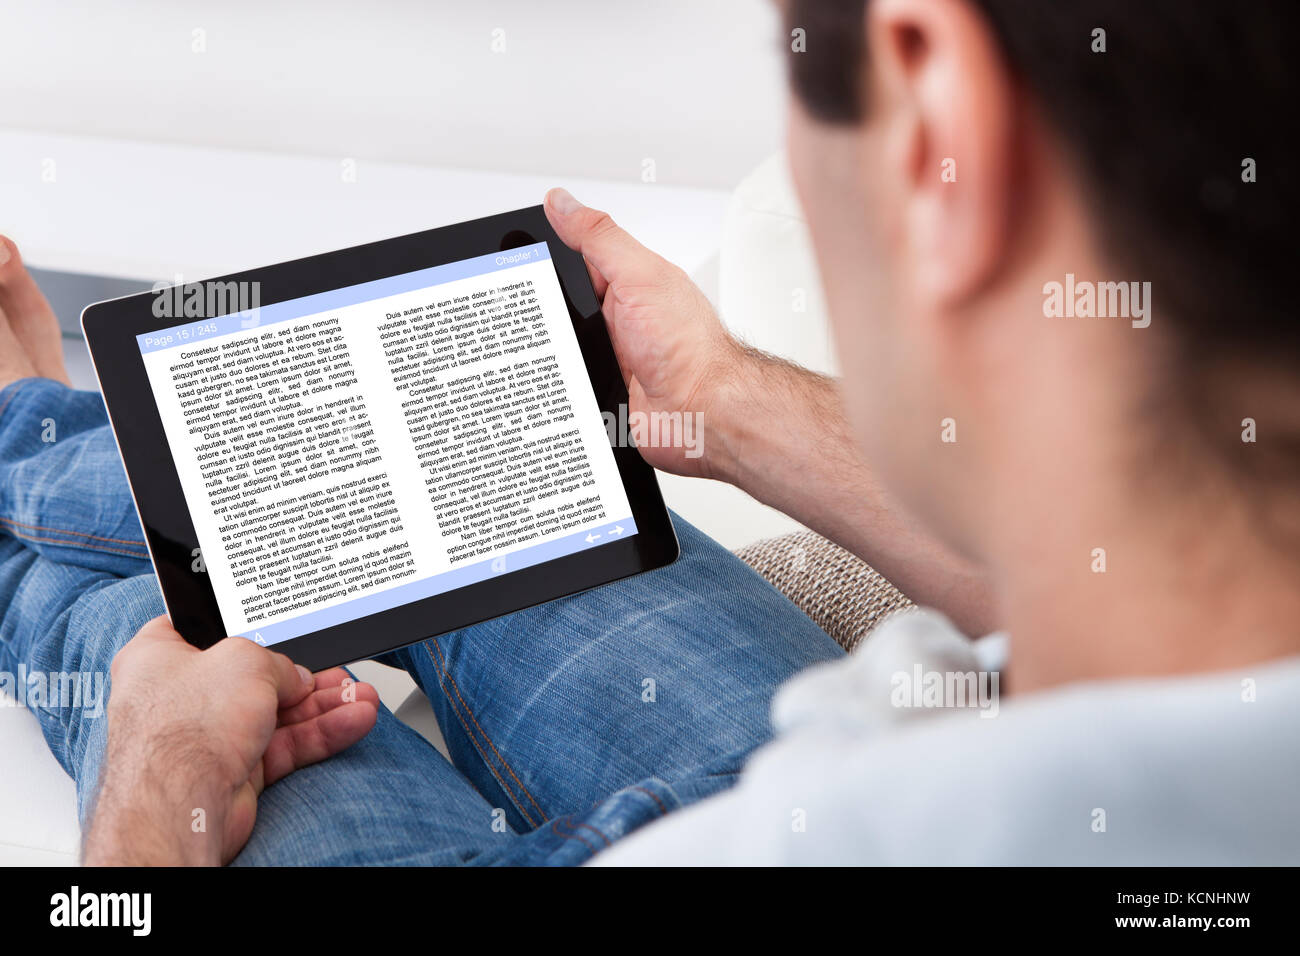 Close-up Of Man Holding Touch Screen Device Showing An E-book - Stock Image